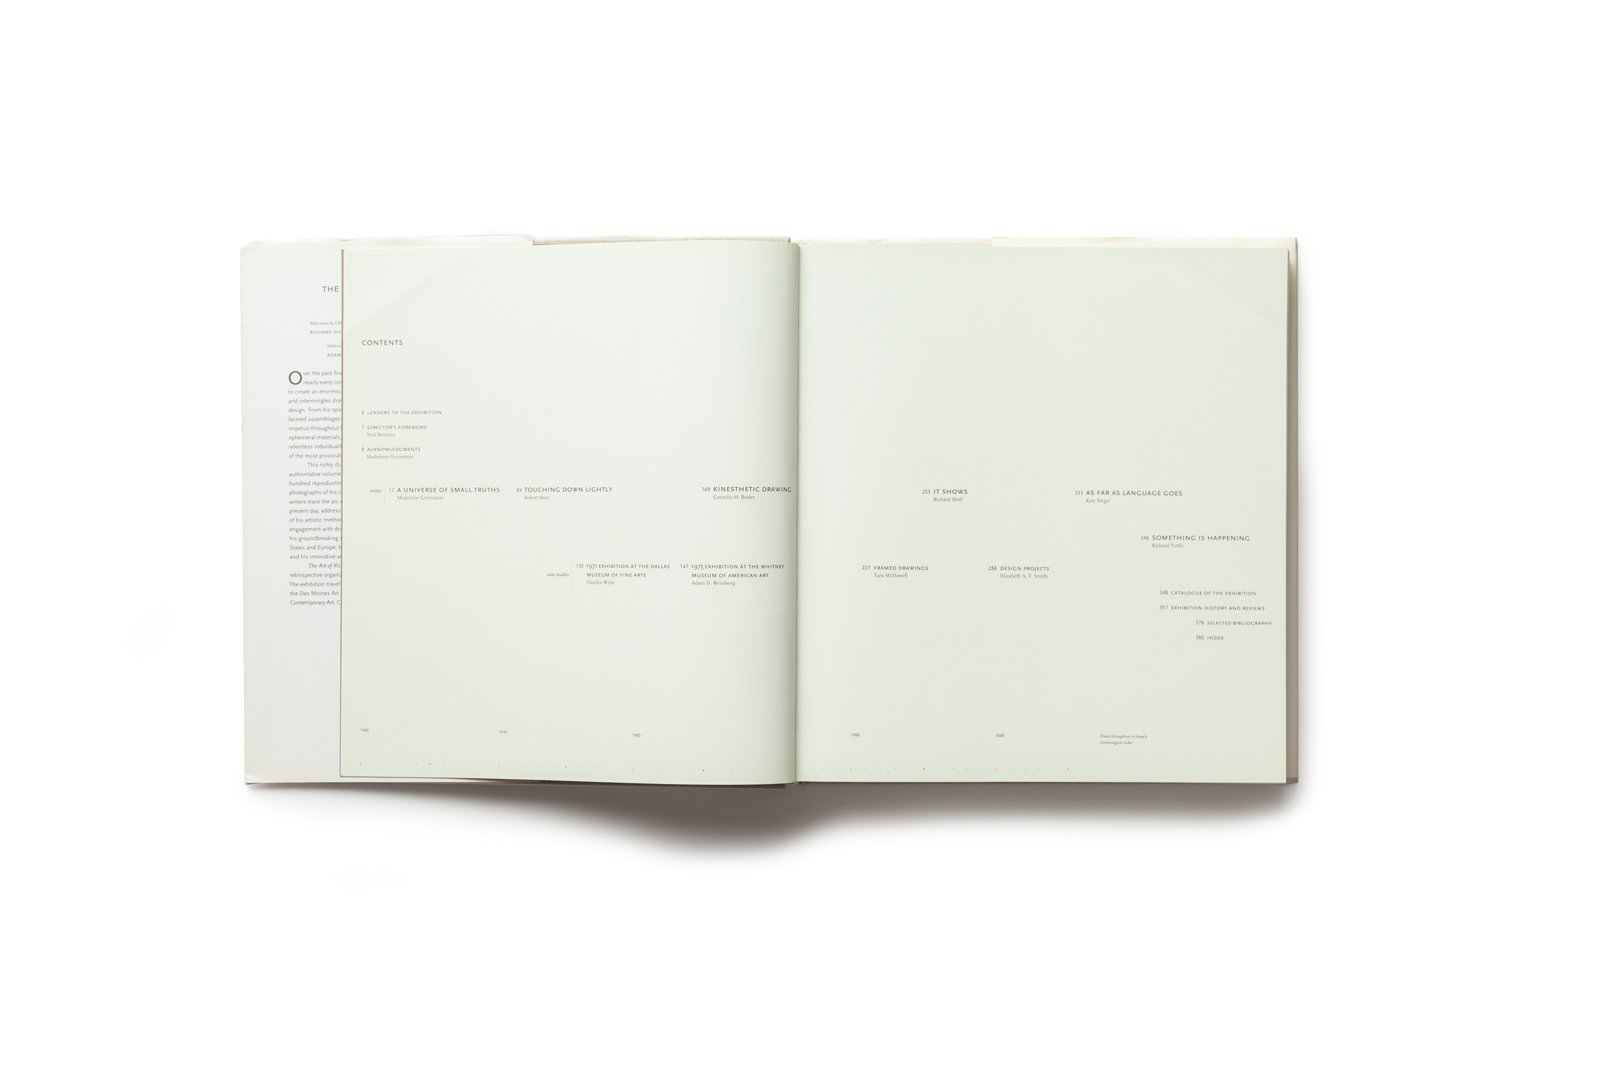 The Art of Richard Tuttle publication table of contents